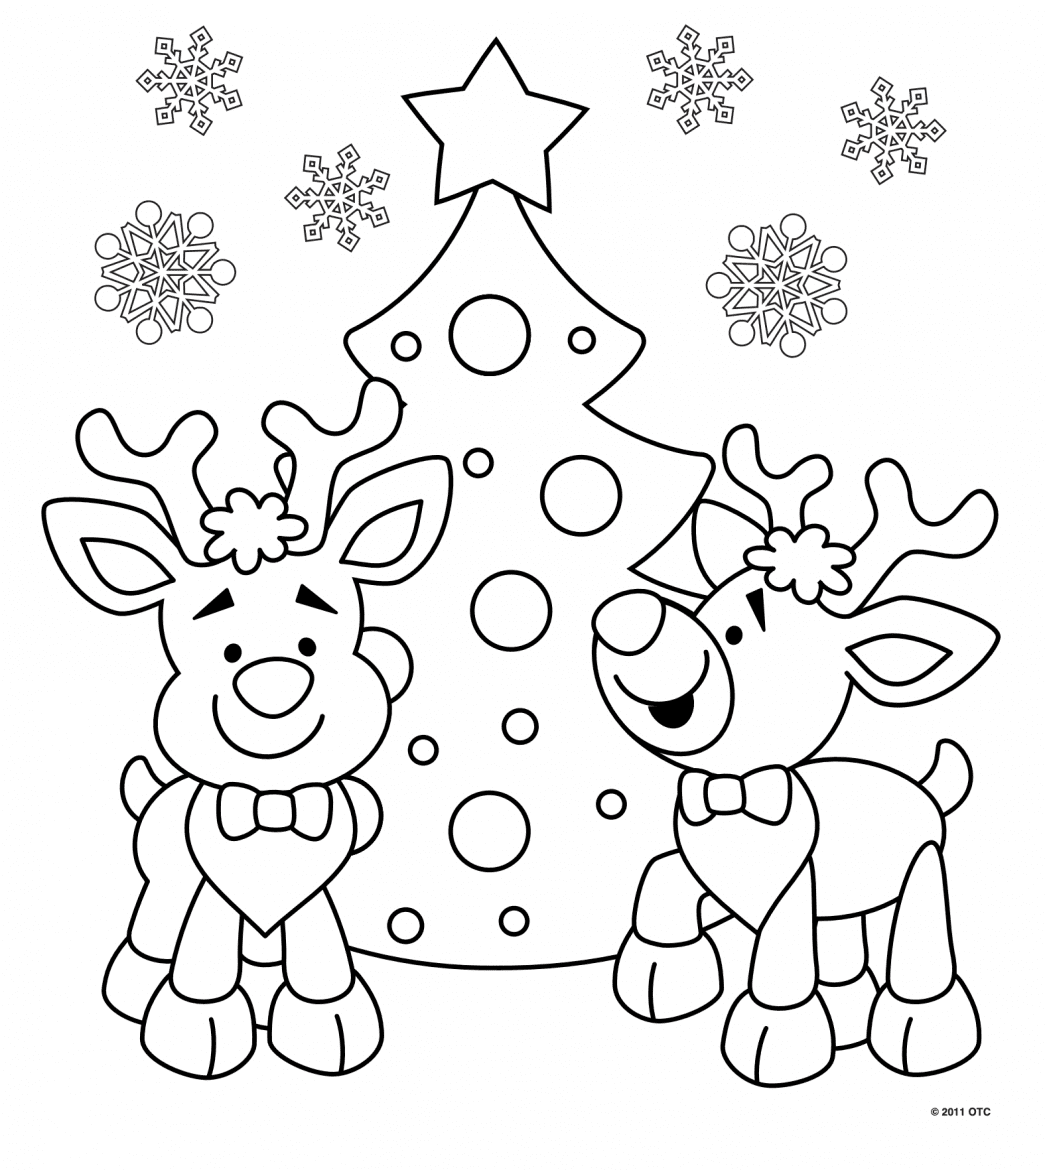 colouring pages christmas reindeer reindeer coloring pages to download and print for free christmas reindeer pages colouring